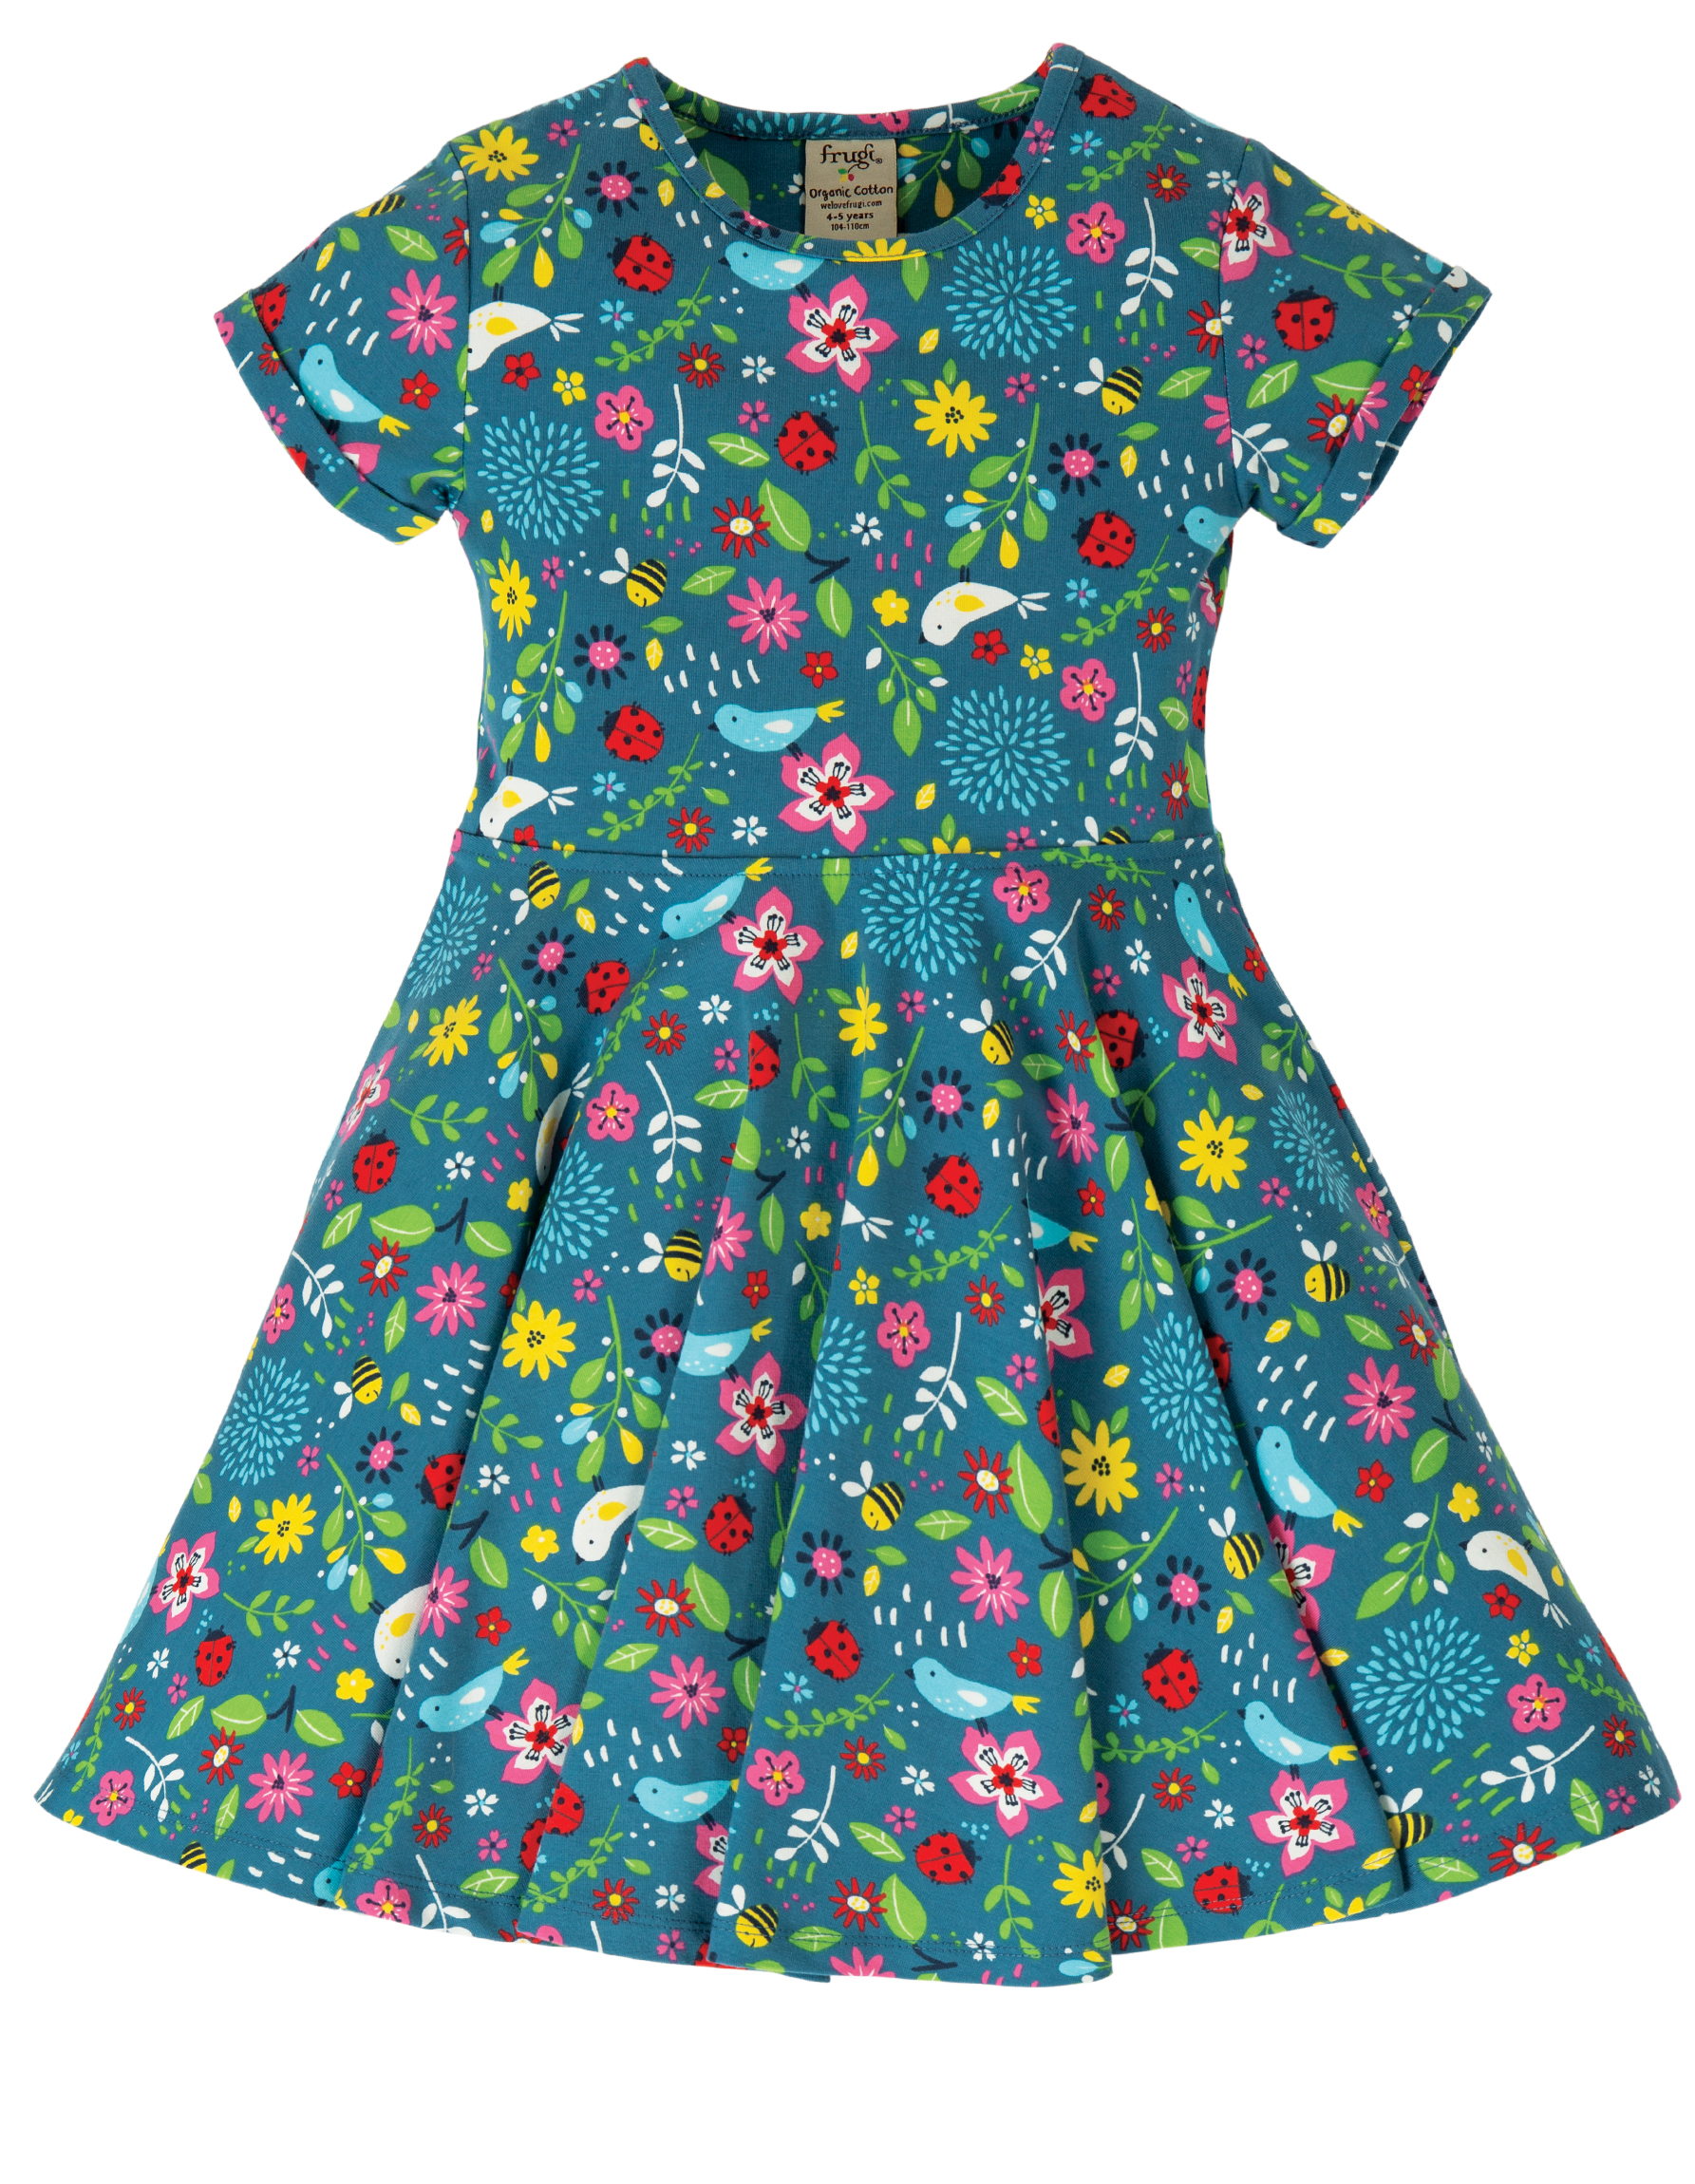 Frugi - Spring Skater Dress - Garden Friends